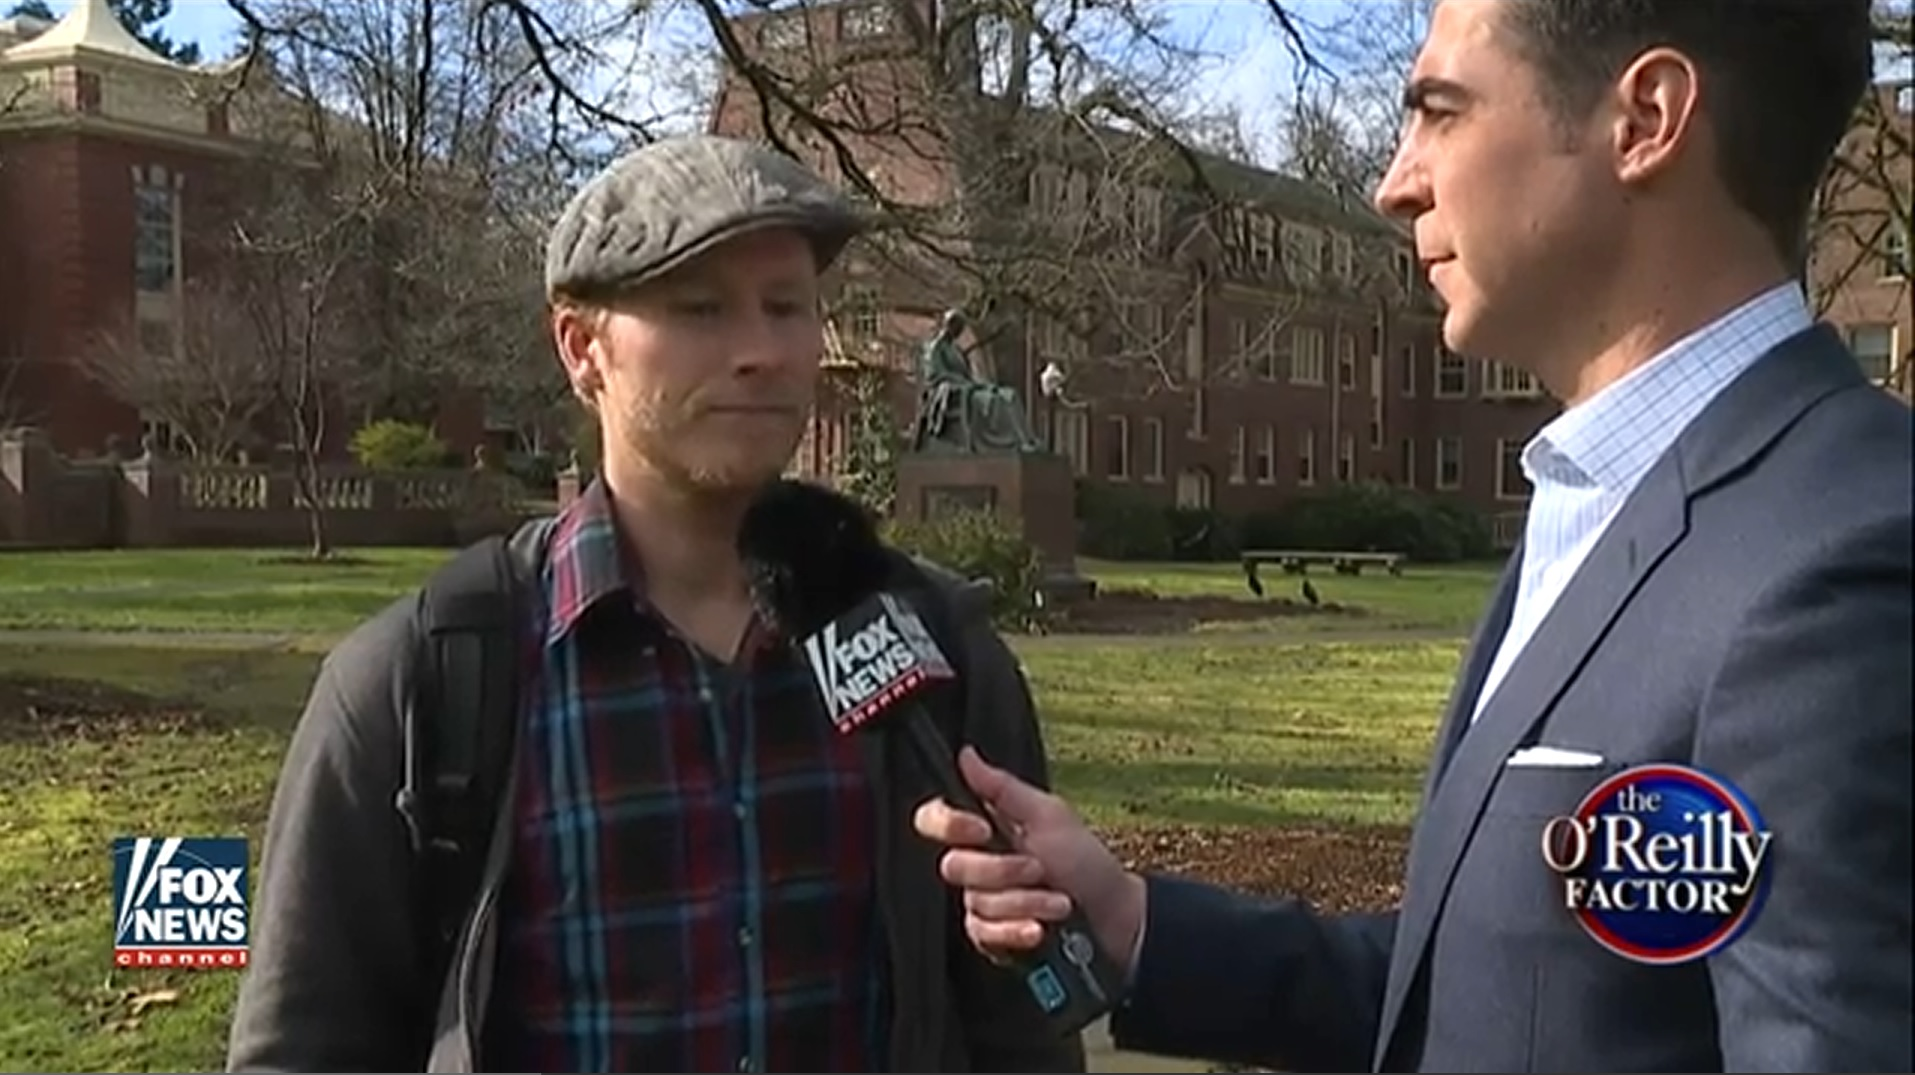 Ever Wonder What Young College Kids Like About Bernie Sanders?  2/5/16